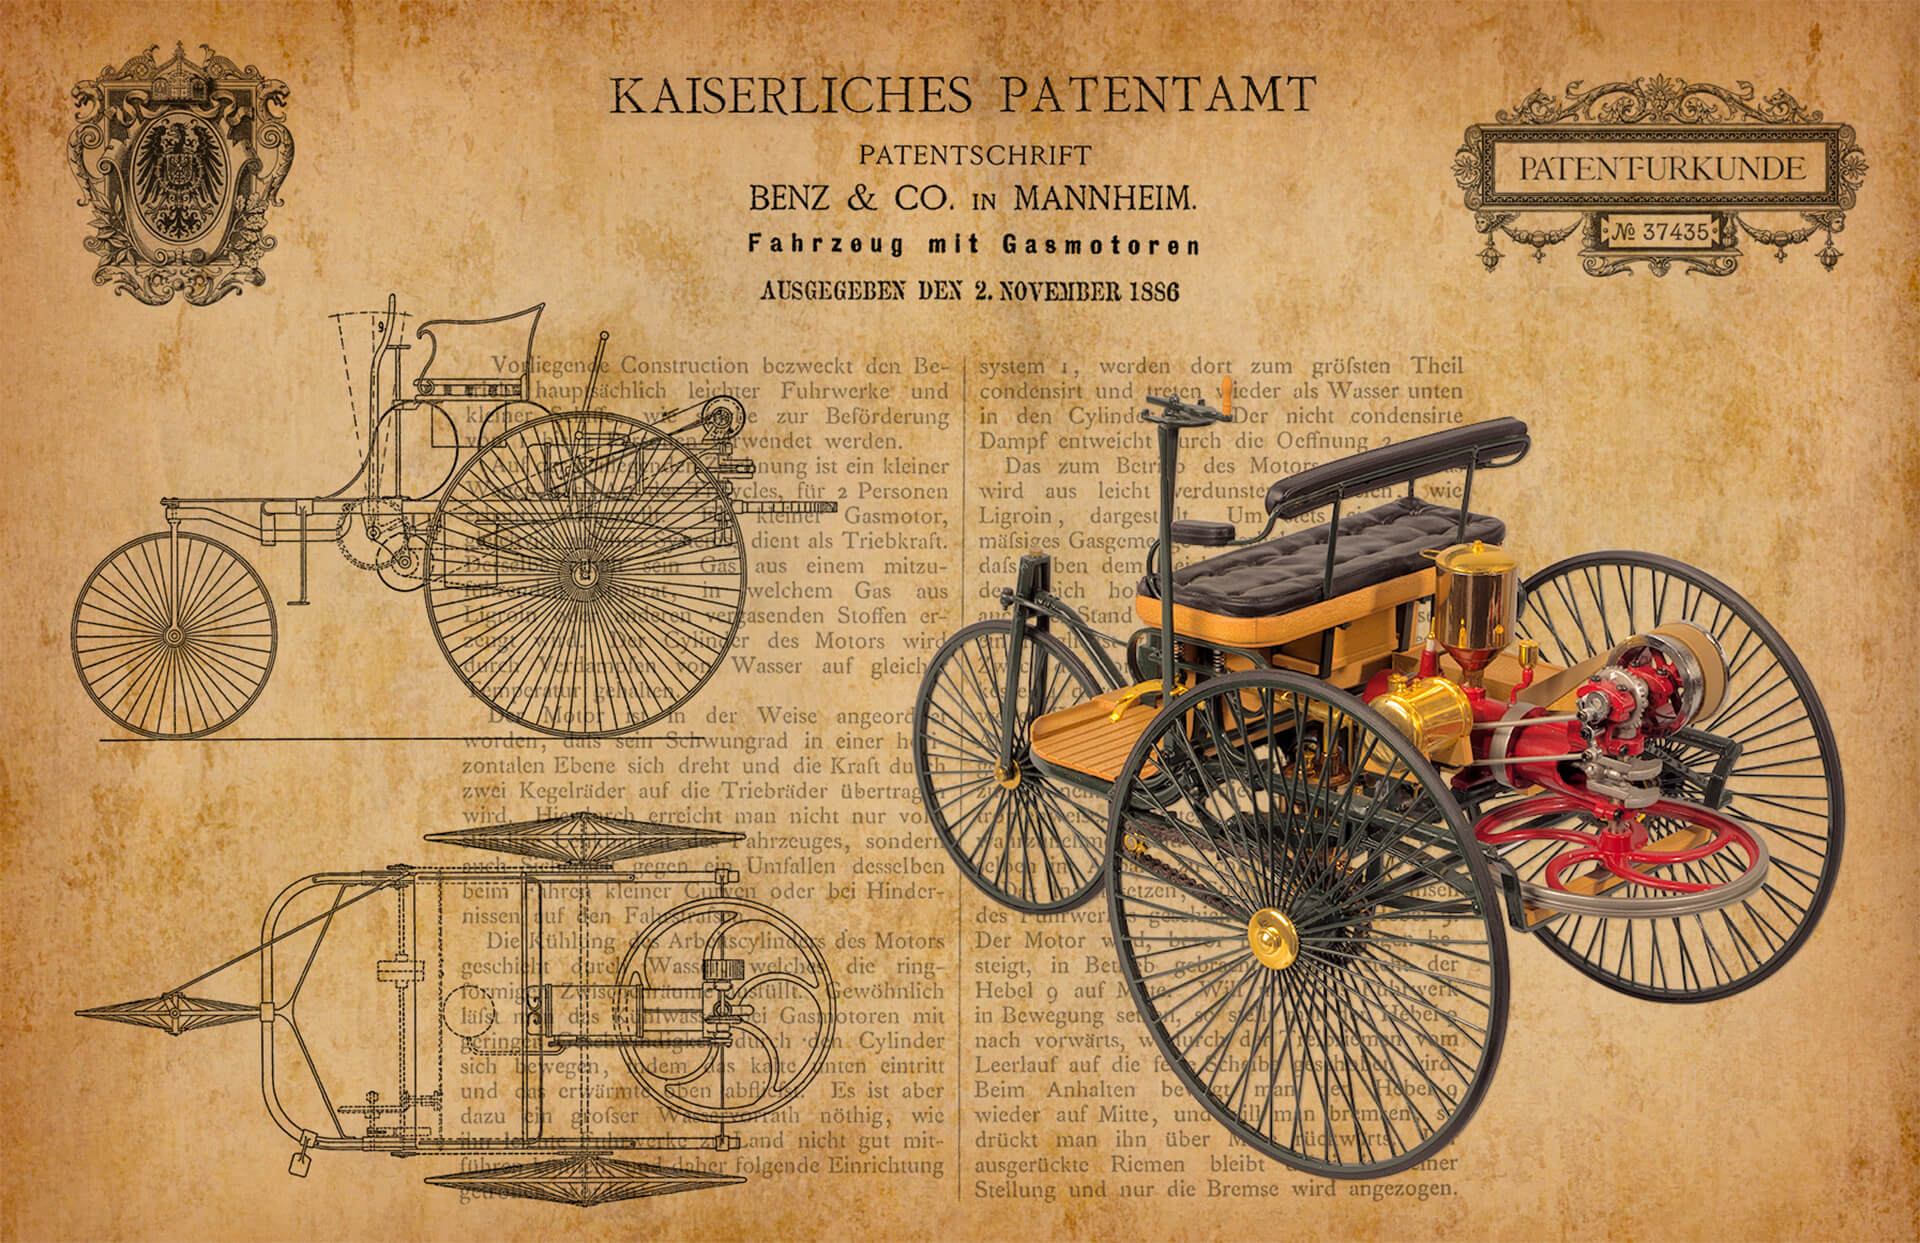 Patent Artwork by John & Shantie Pattenden